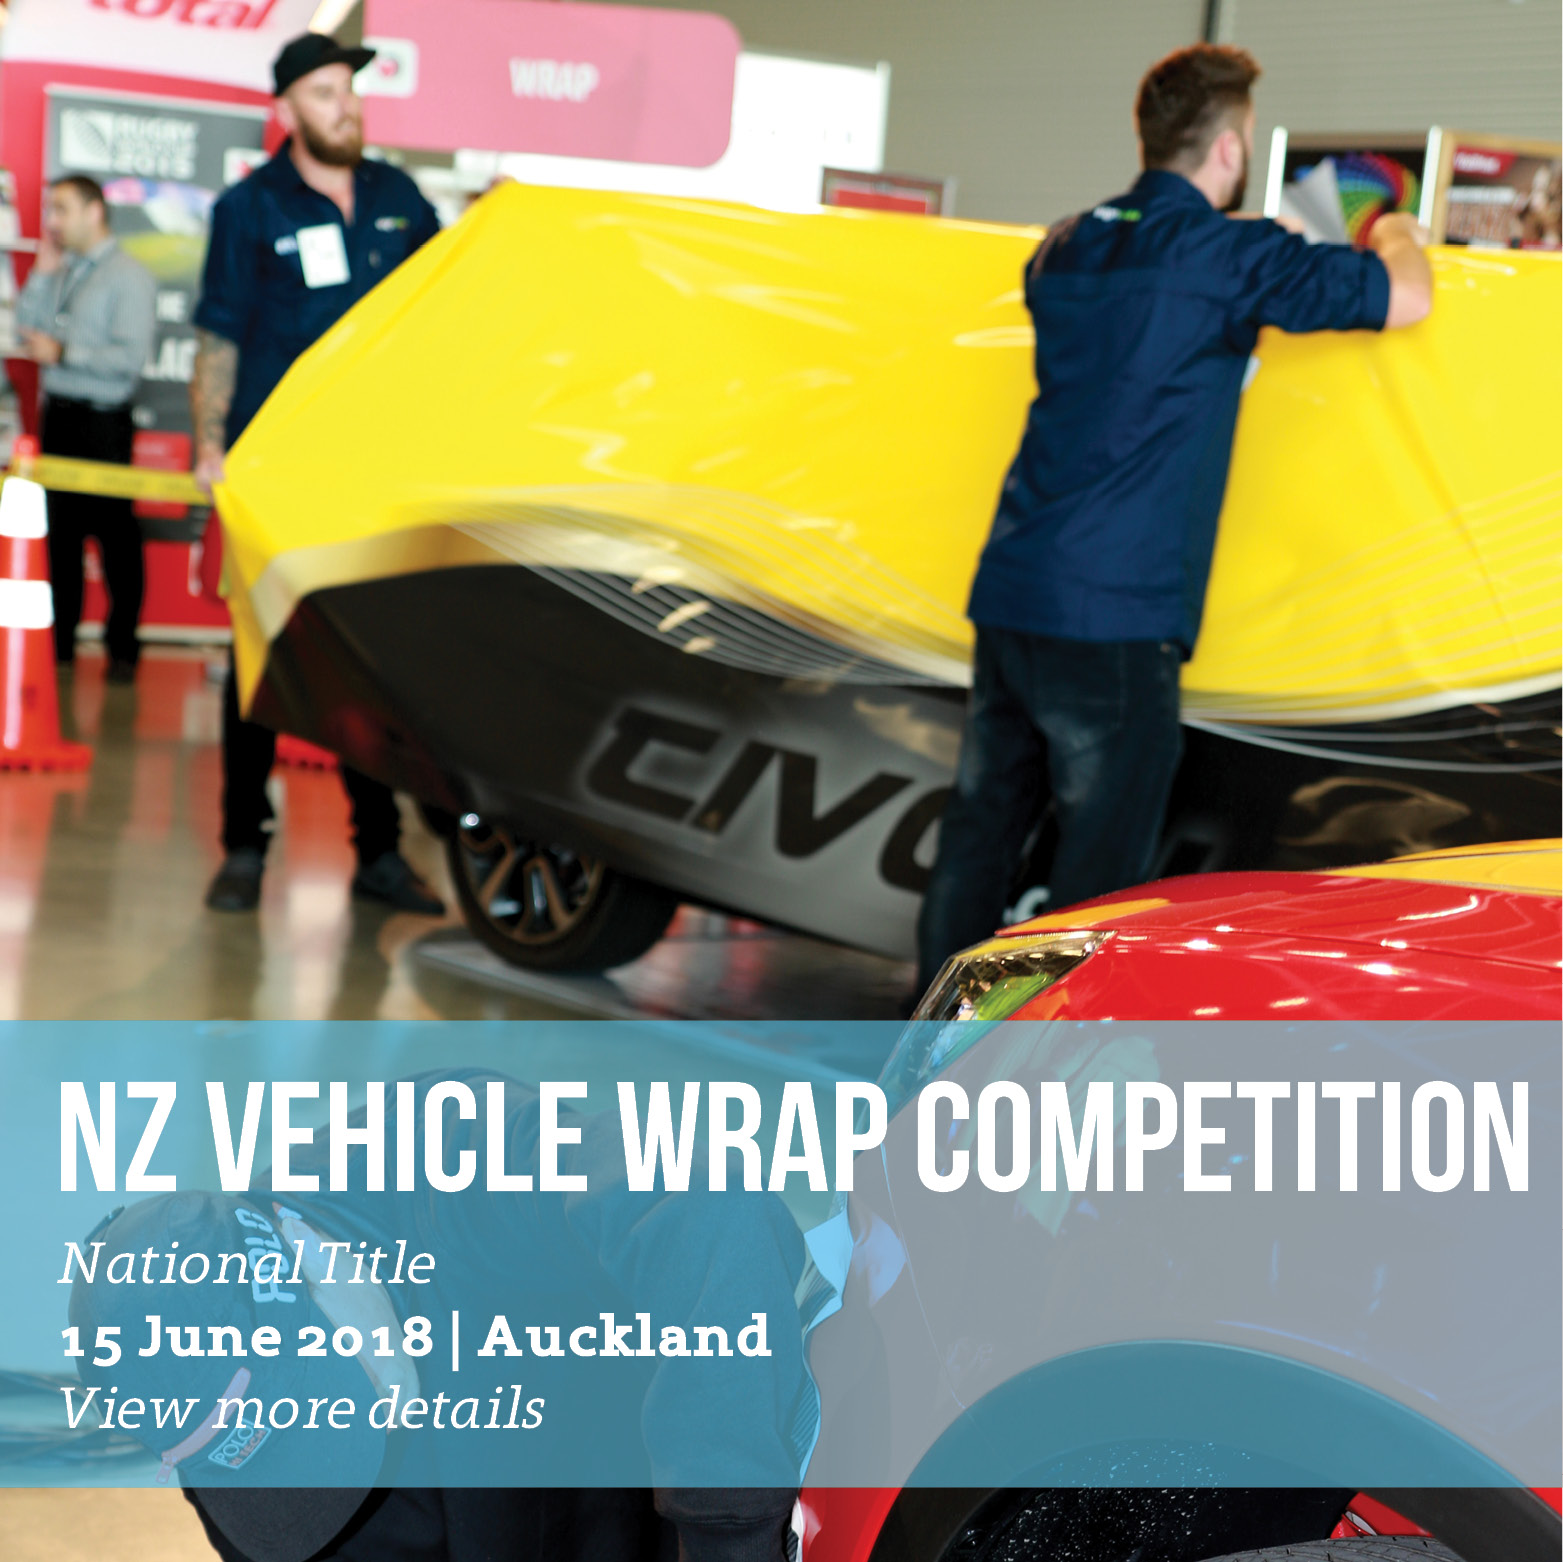 NZ Vehicle Wrap Competition